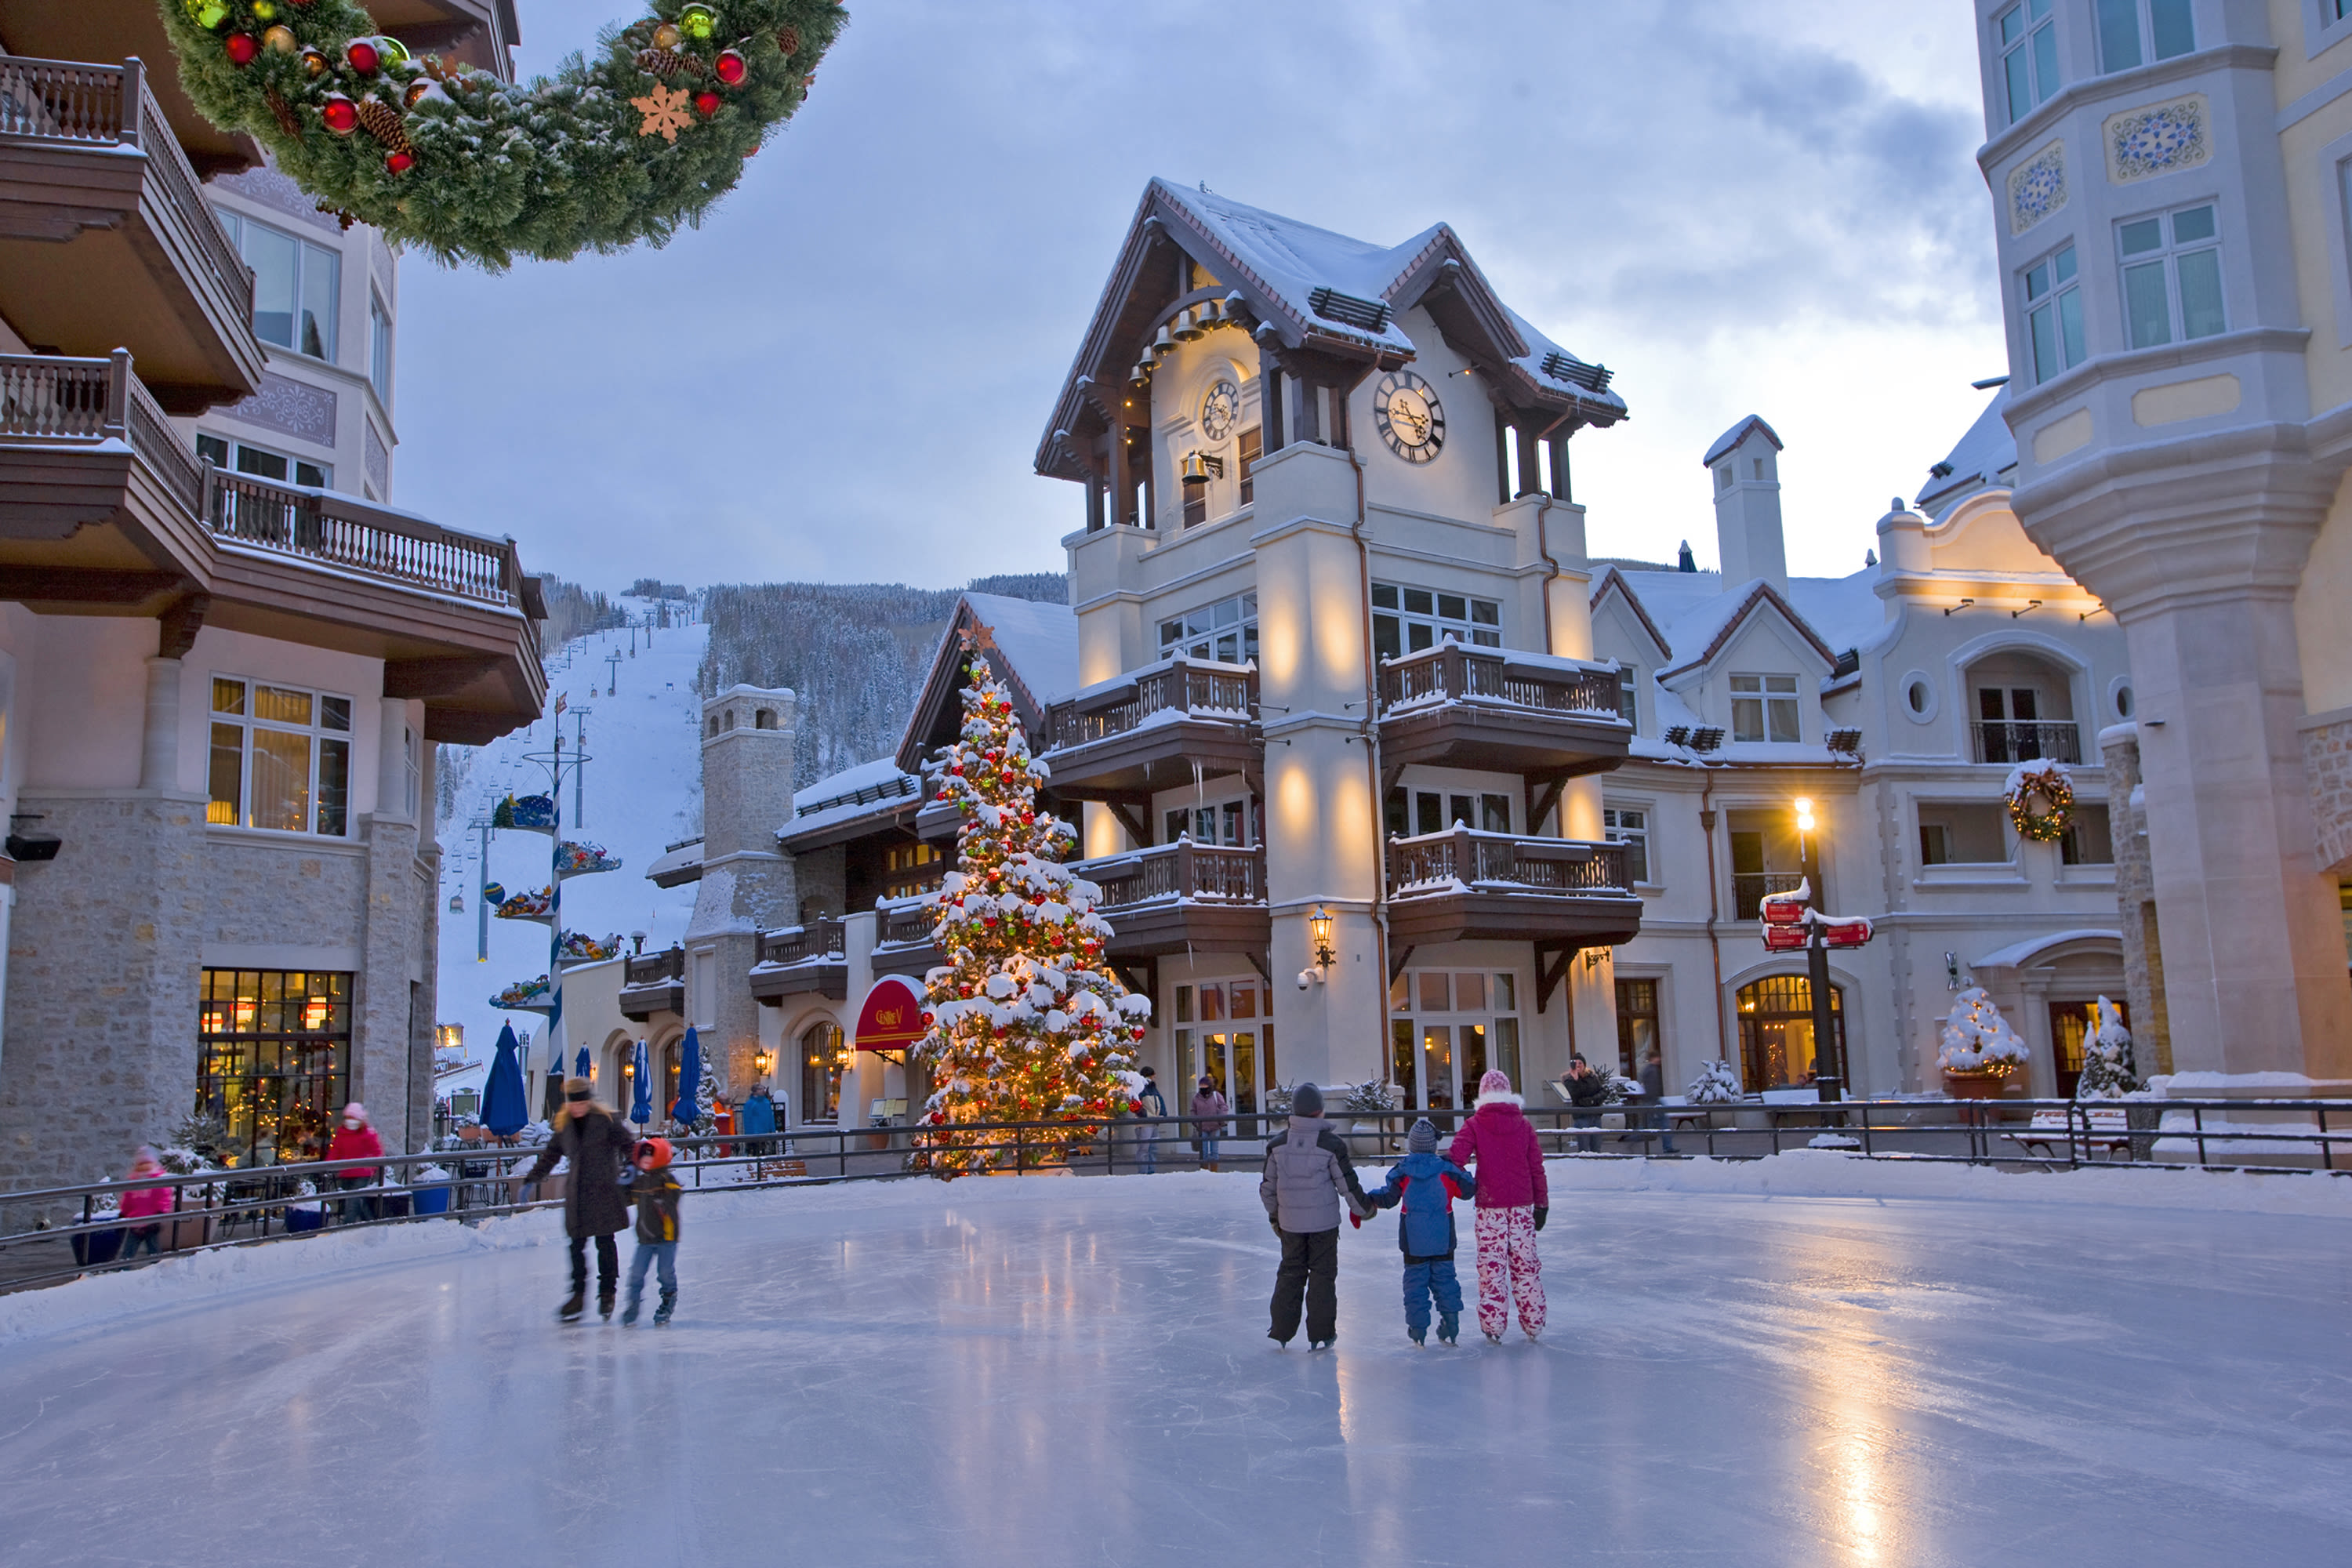 Vail lionshead arrabelle vail square by jack affleck huptqc